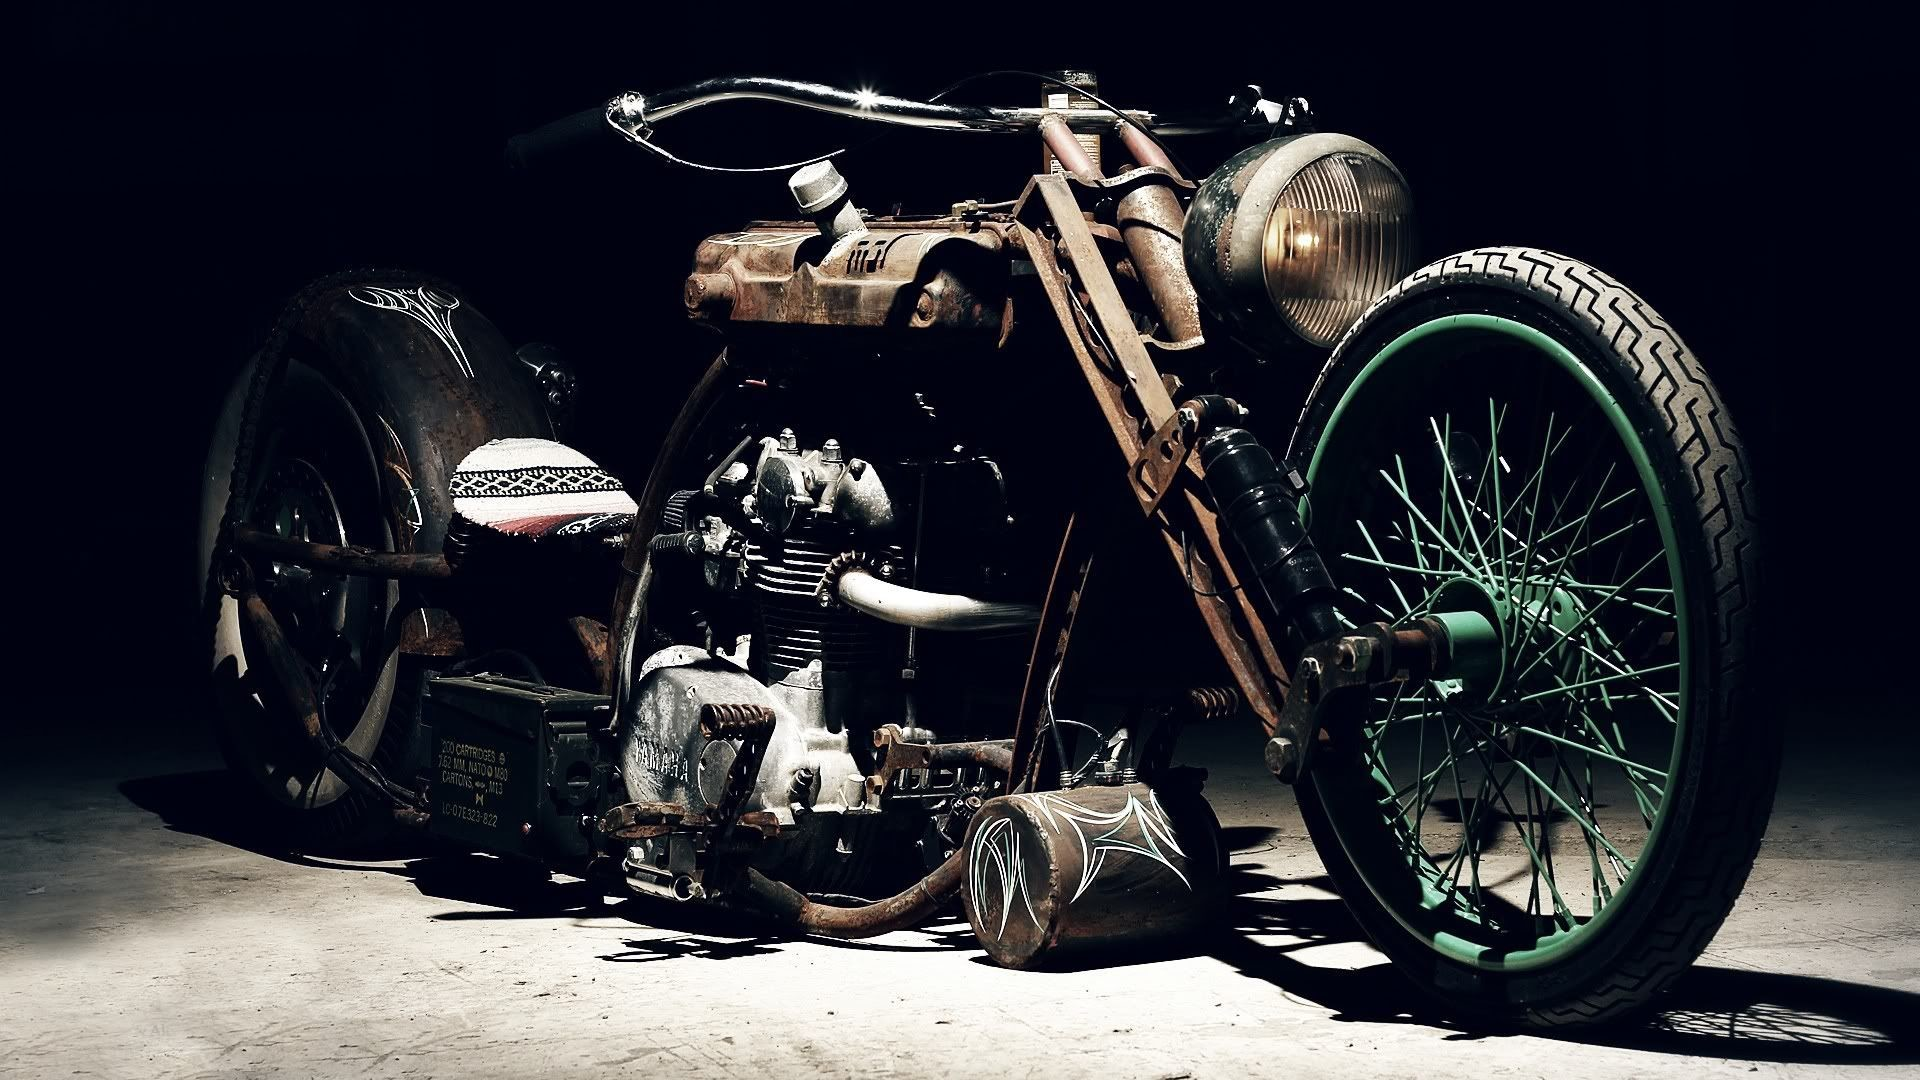 Res: 1920x1080, 2500x1663 Vintage Motorcycle Wallpaper High Quality   Vehicles Wallpapers  ... 2500x1663 Vintage ...